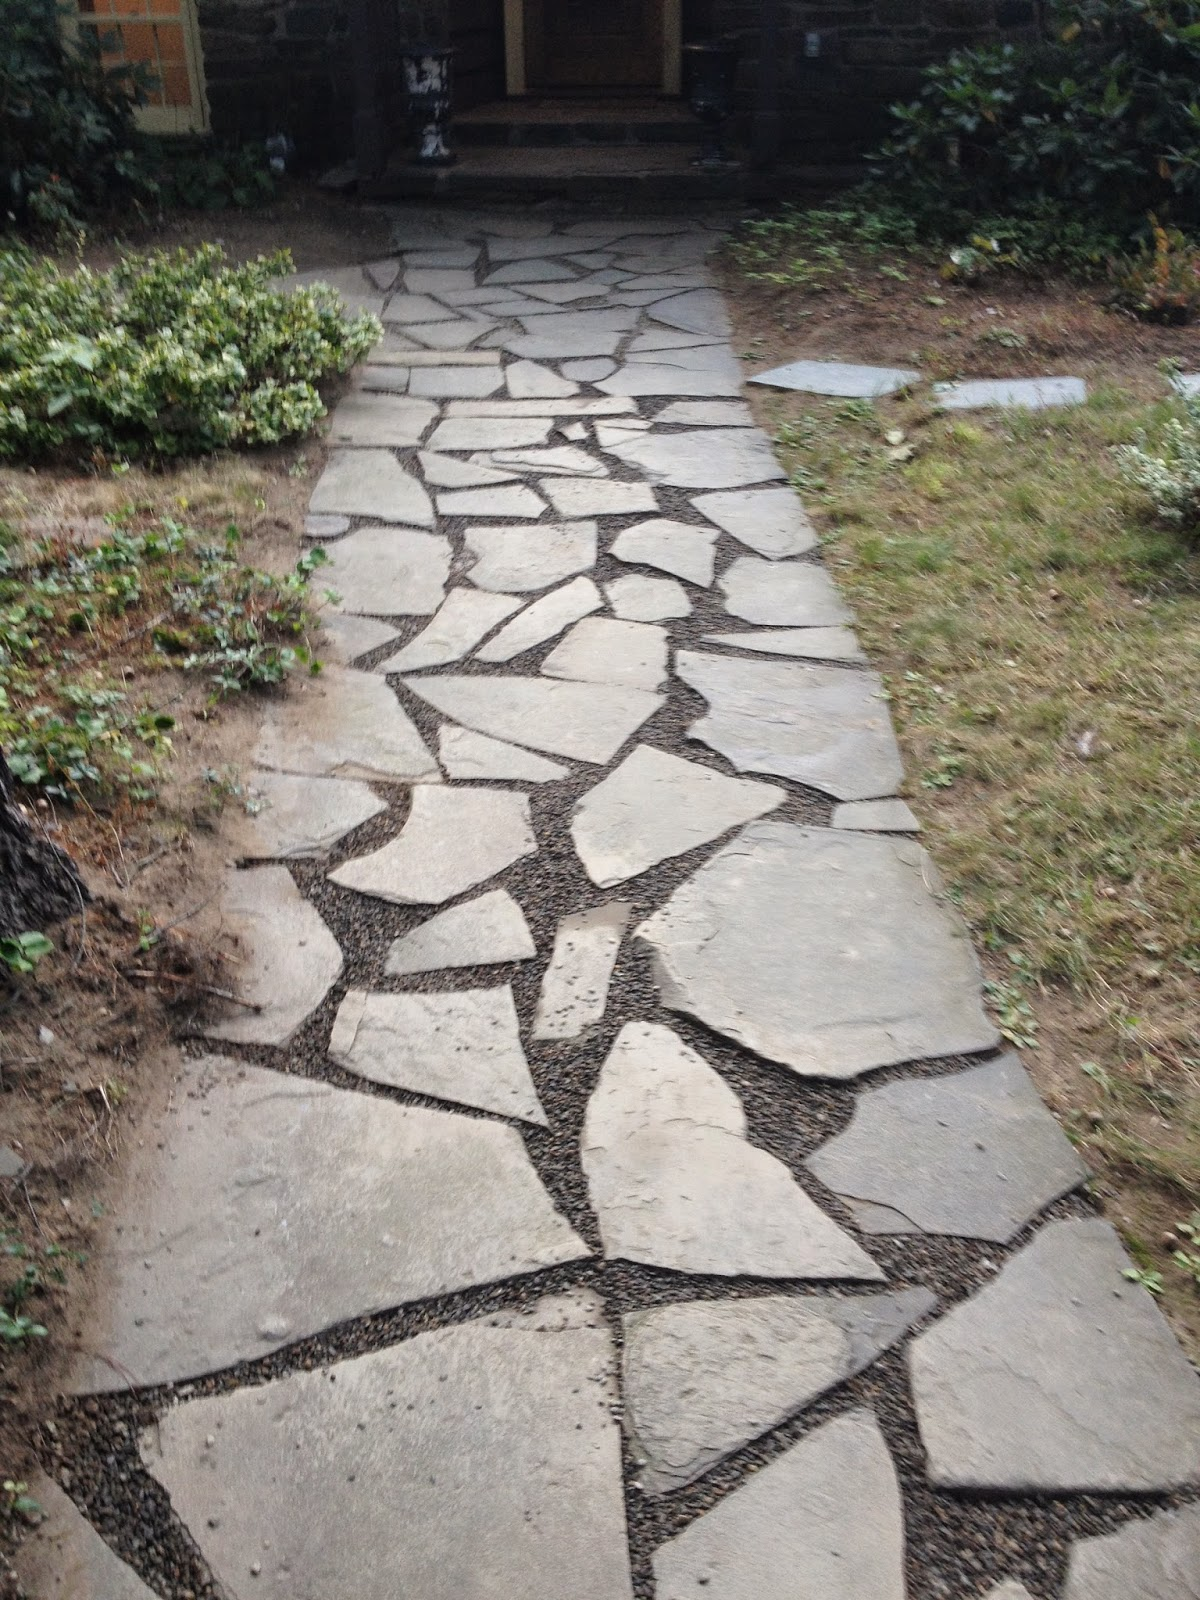 How to correct a muddy walkway-how to fix a muddy walkway - how to add drainage to a walkway